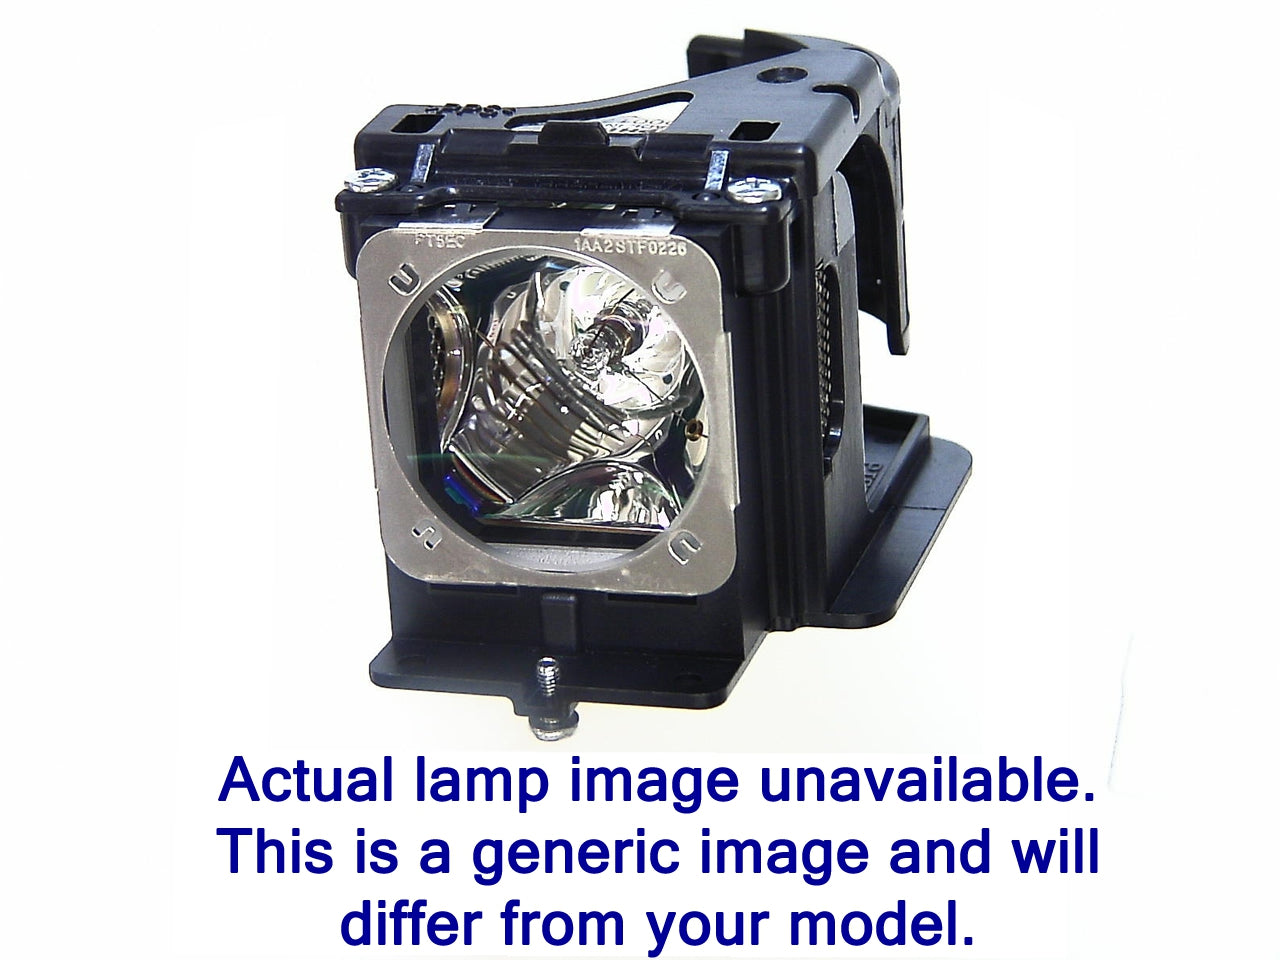 Barco R9802213 Projector Lamp